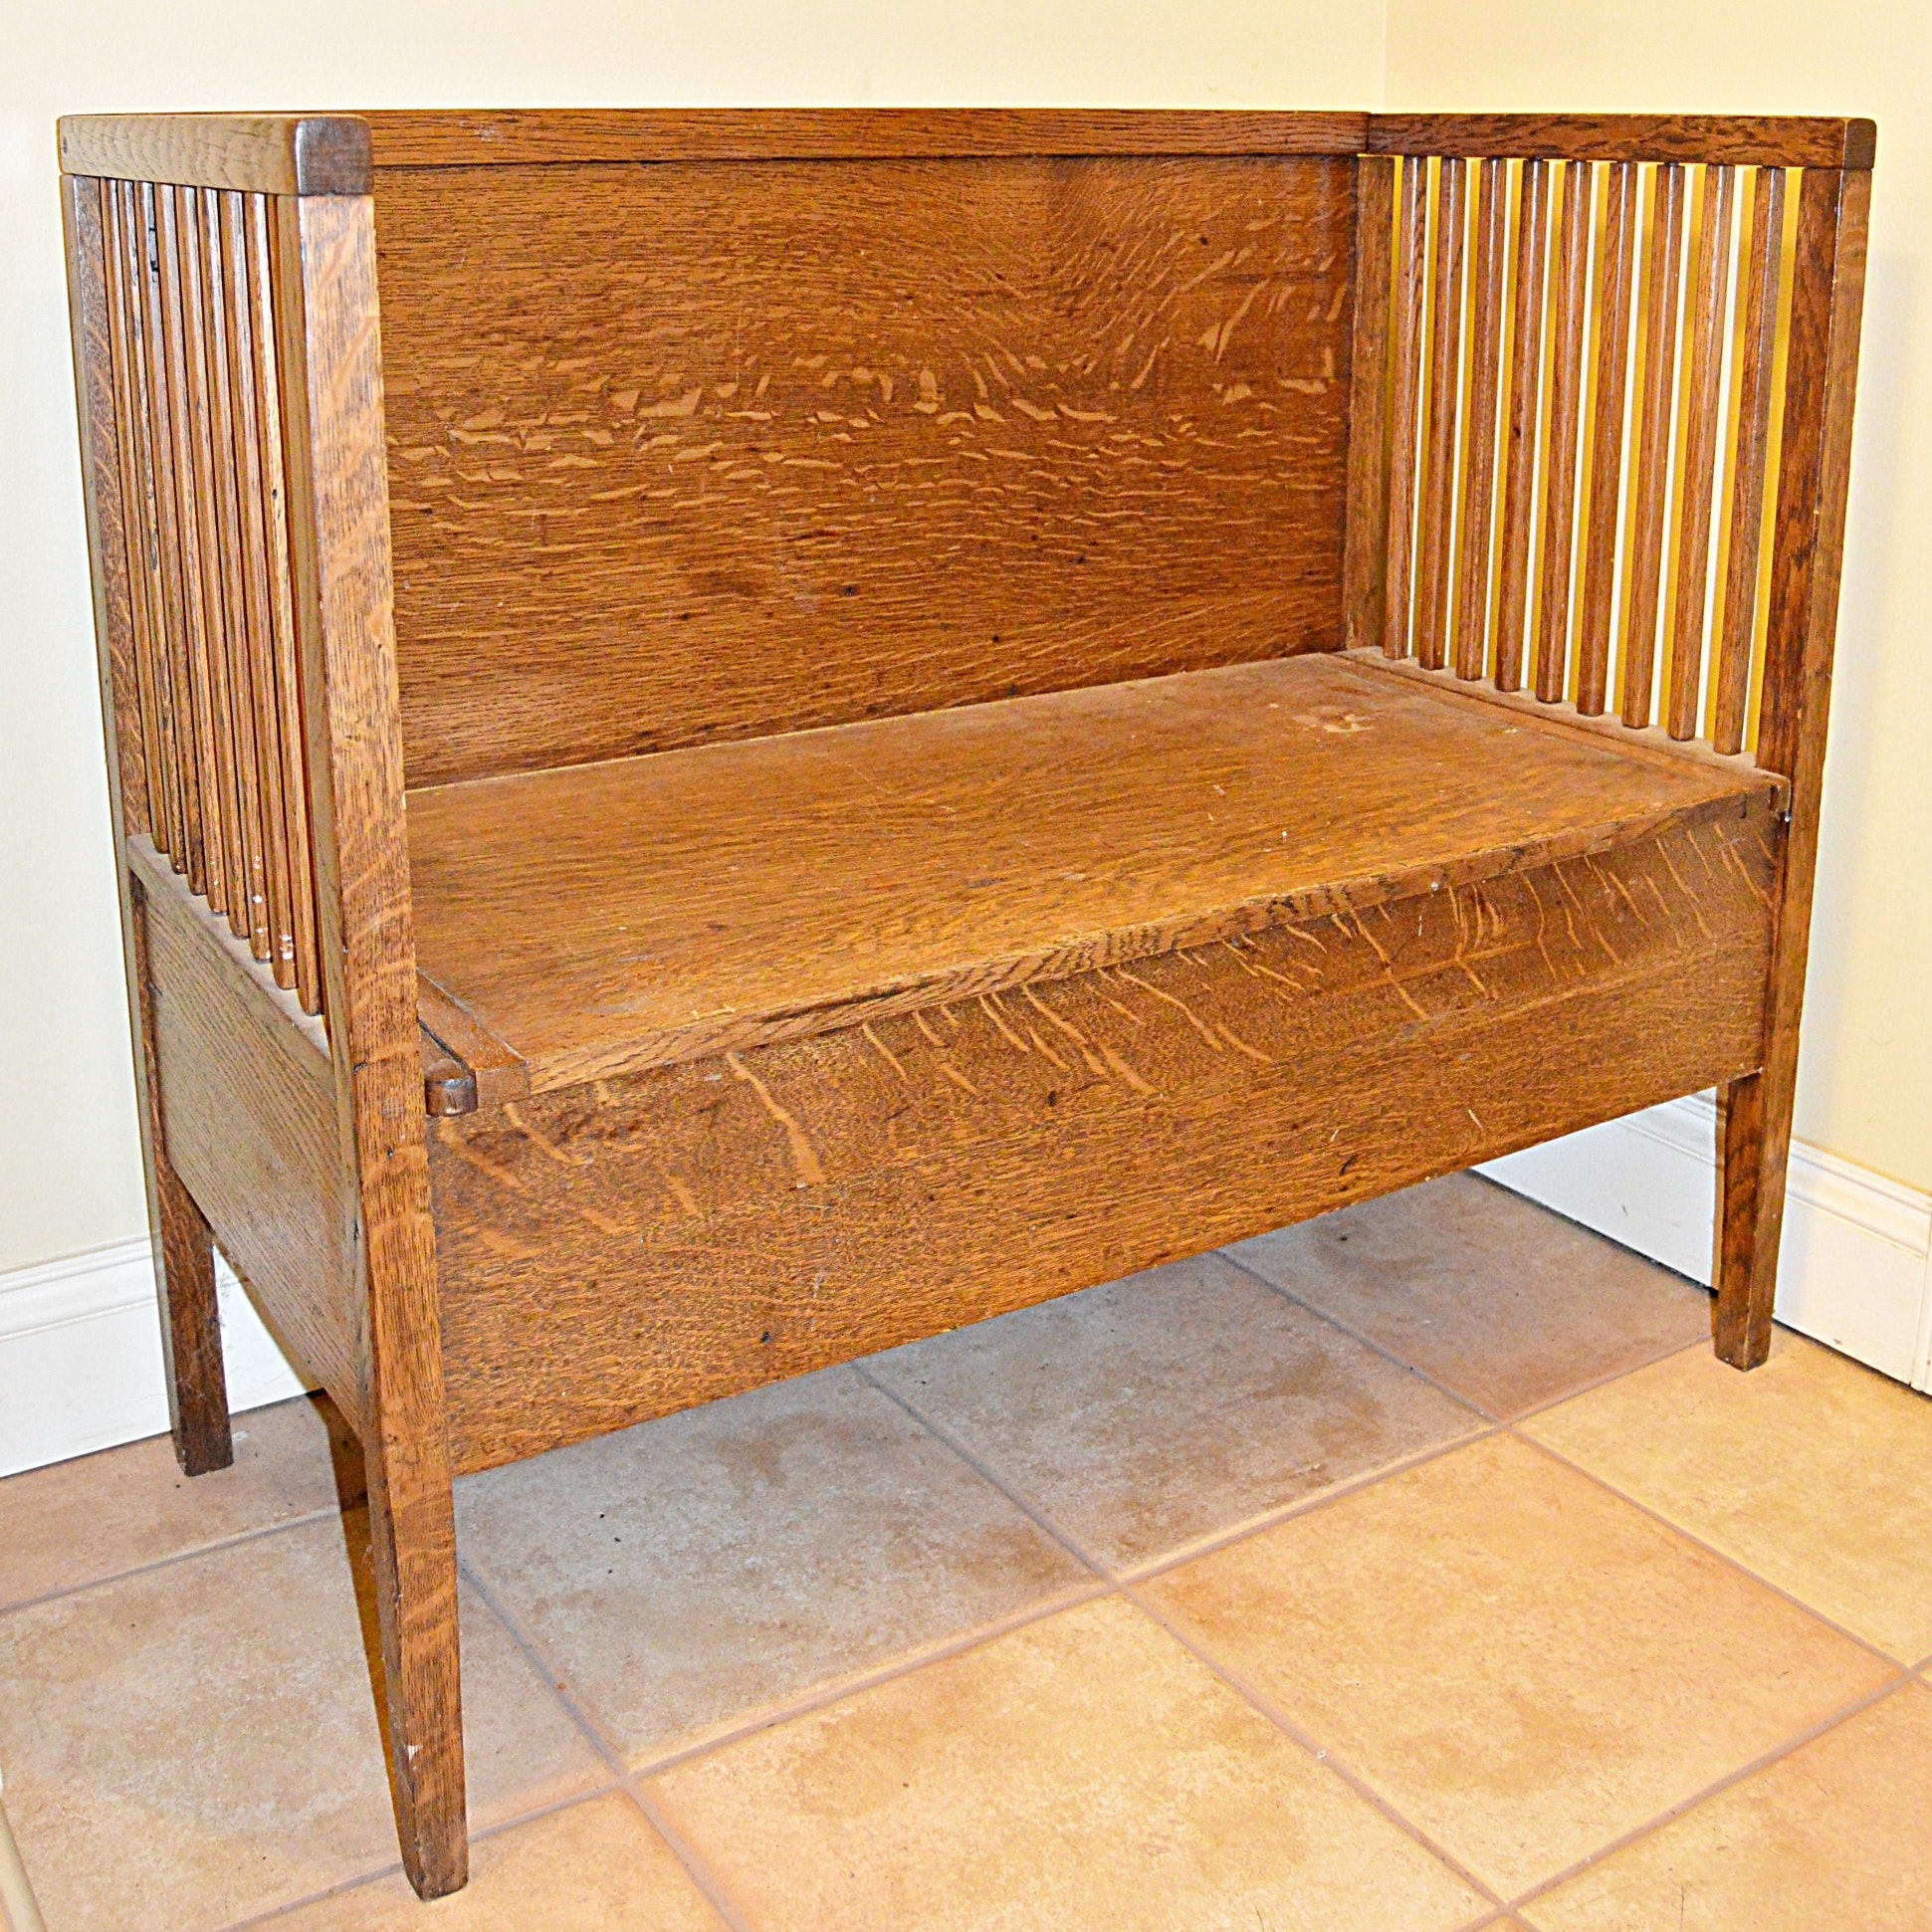 Antique Arts and Crafts Oak Hall Bench